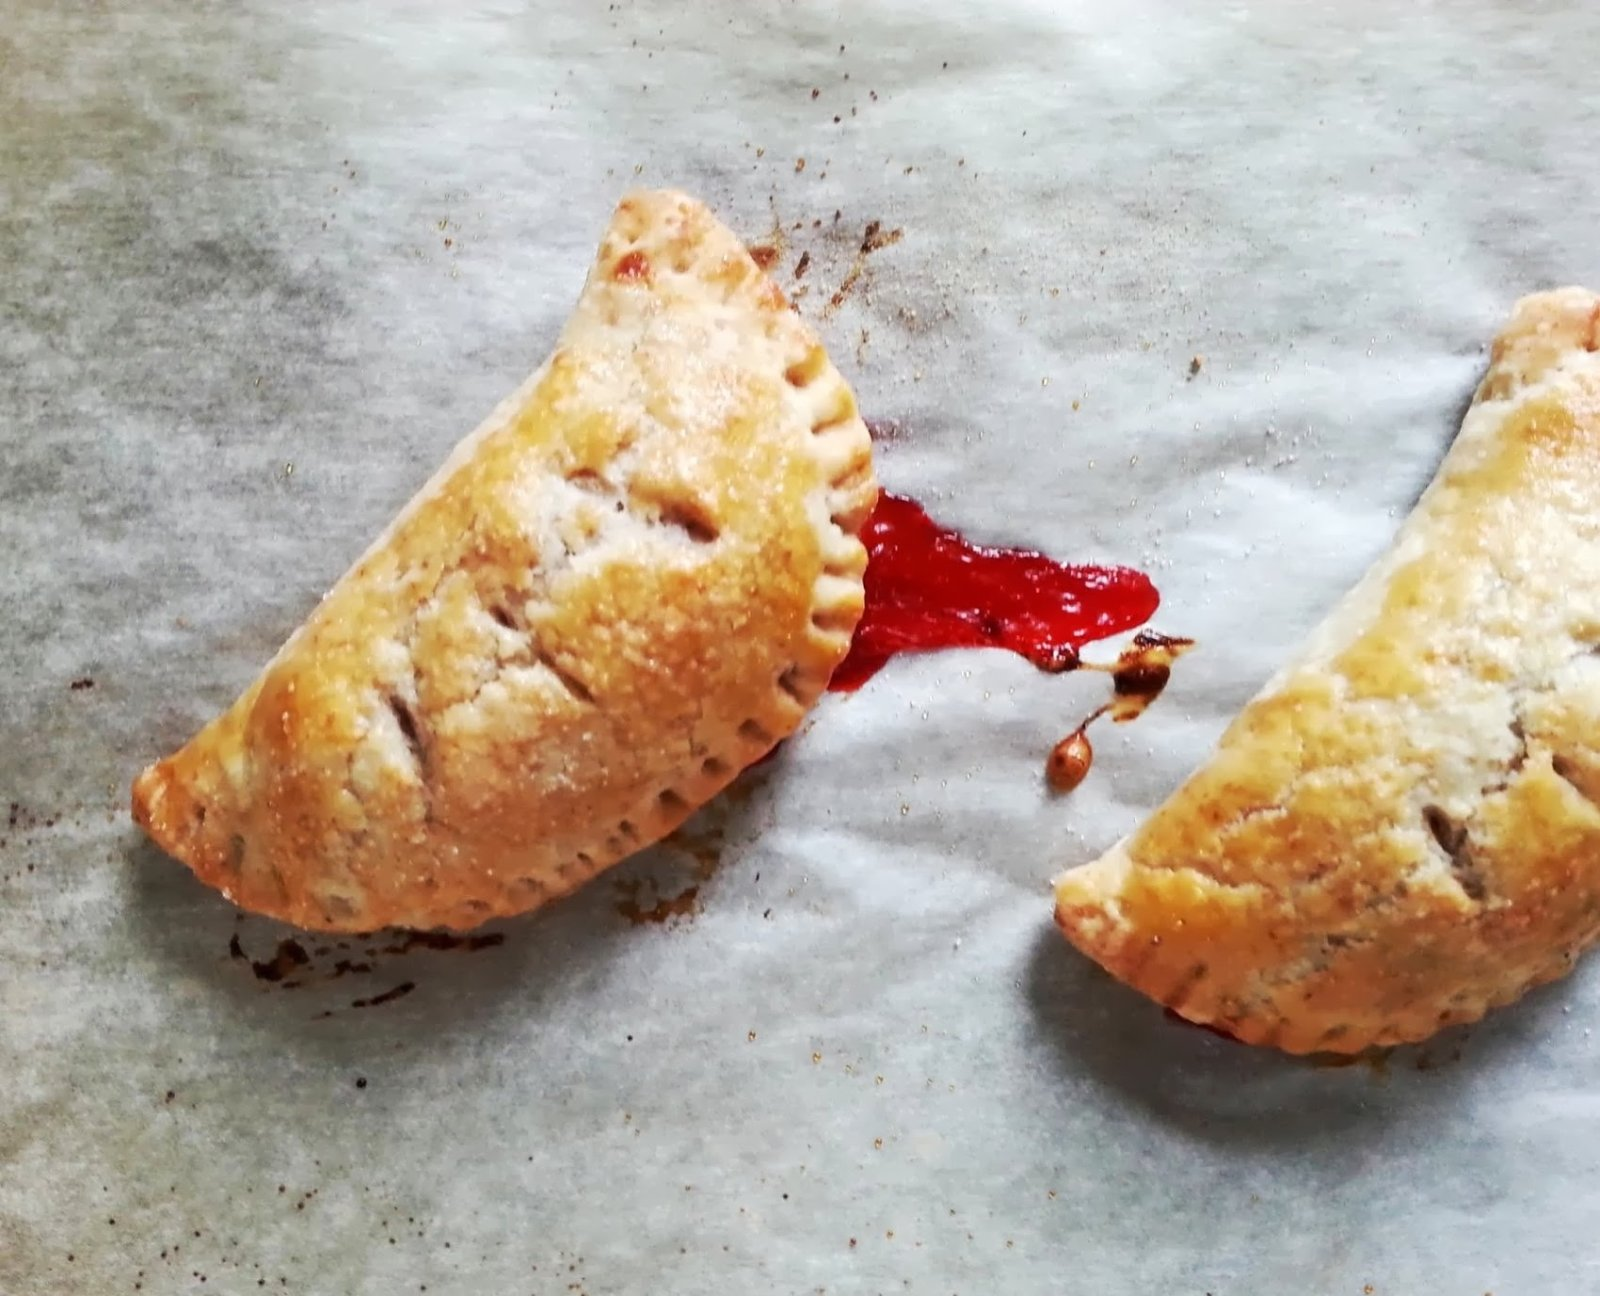 Badger Kitchen: Strawberry-Rhubarb Hand Pies with a Rye Crust